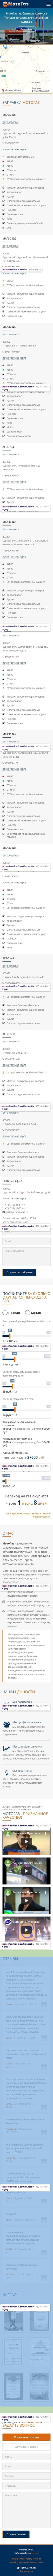 image of the mobile version of the site «Motogaz»